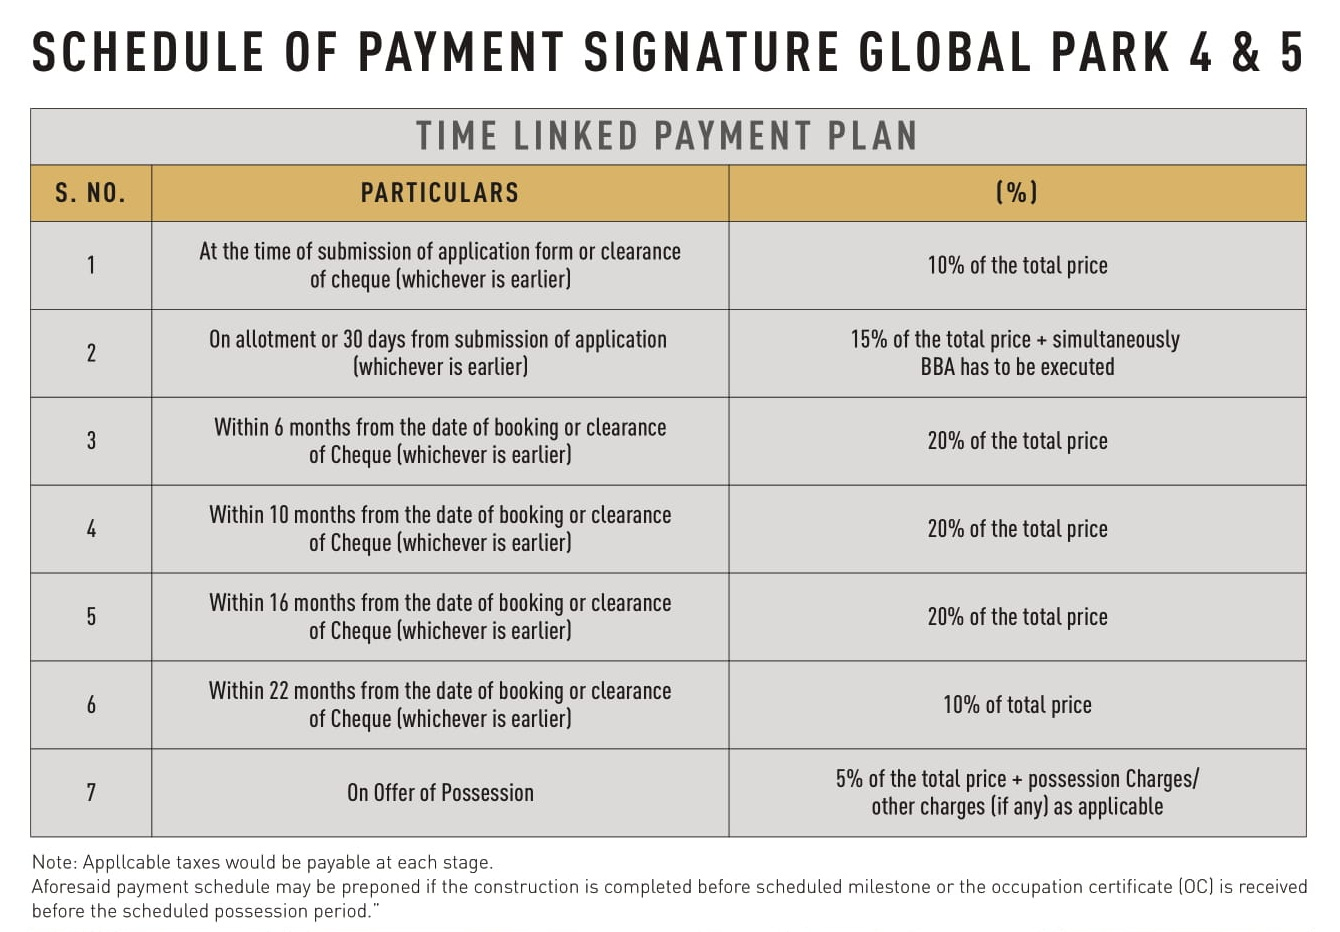 Signature-Global-Park-4-and-5-Payment-Plan